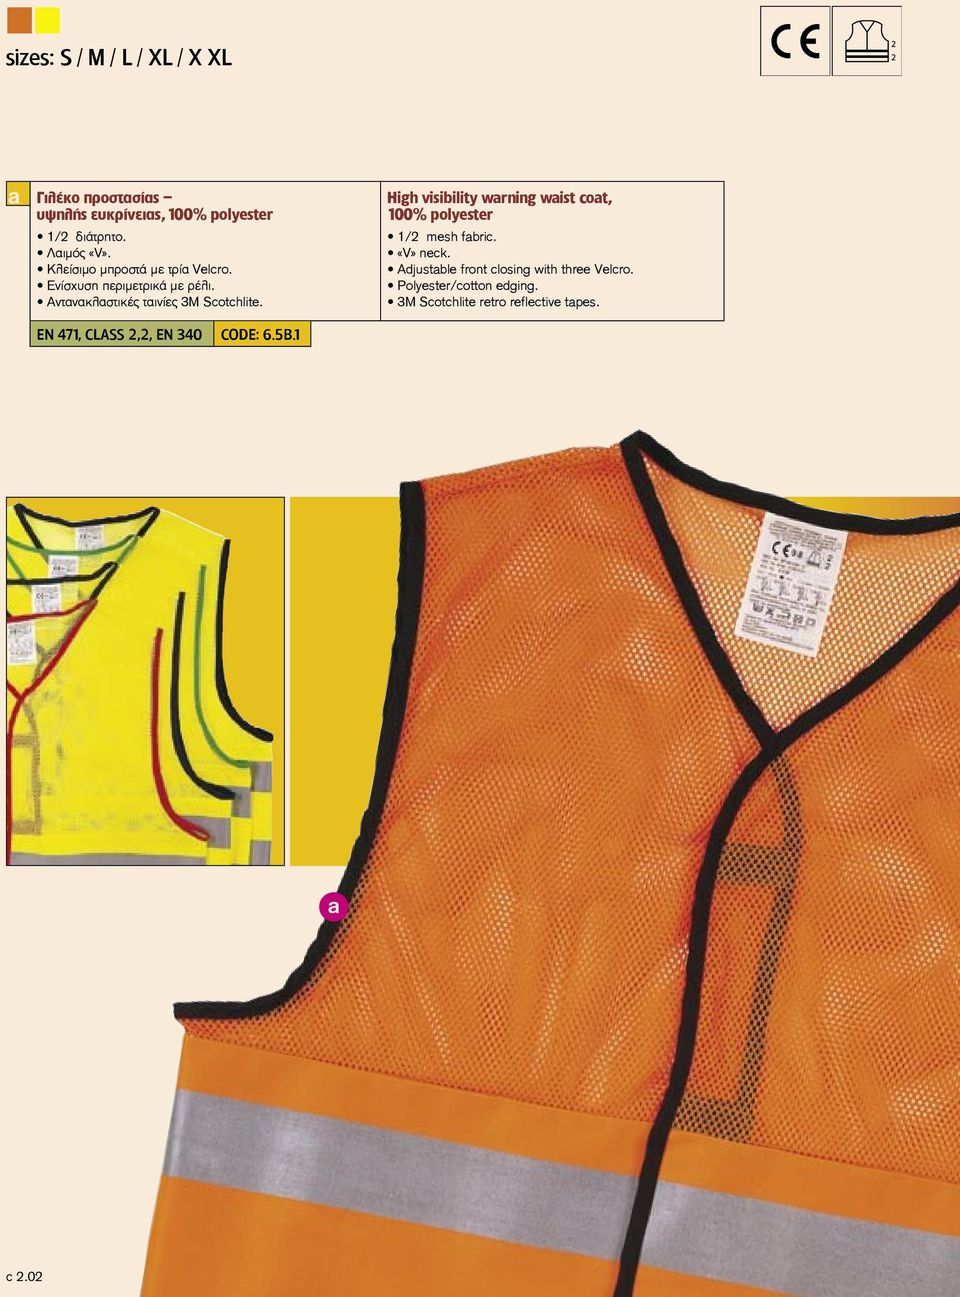 High visibility warning waist coat, 1/2 mesh fabric. «V» neck.